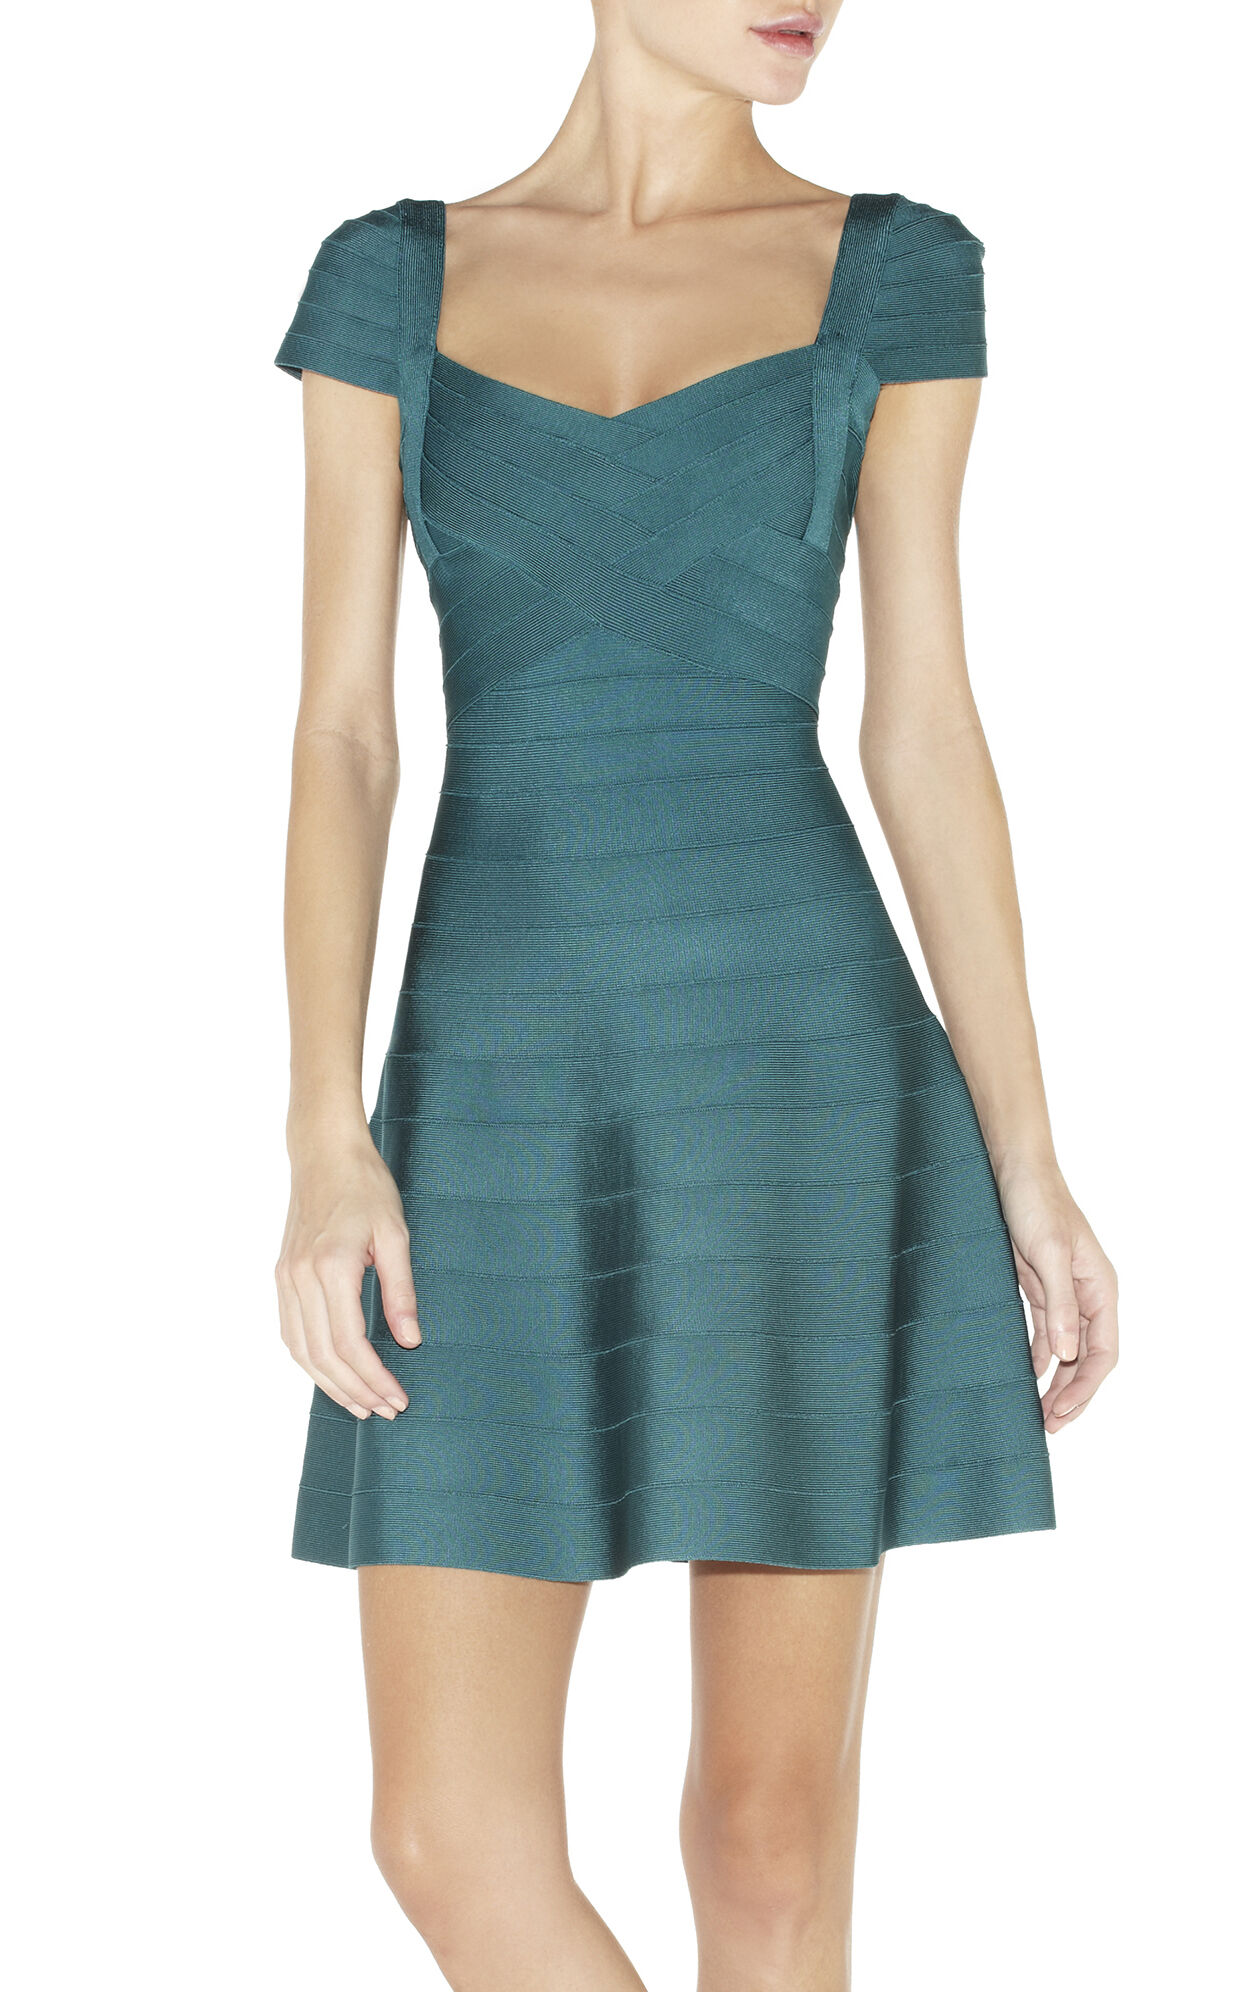 Laika Signature Bandage Dress